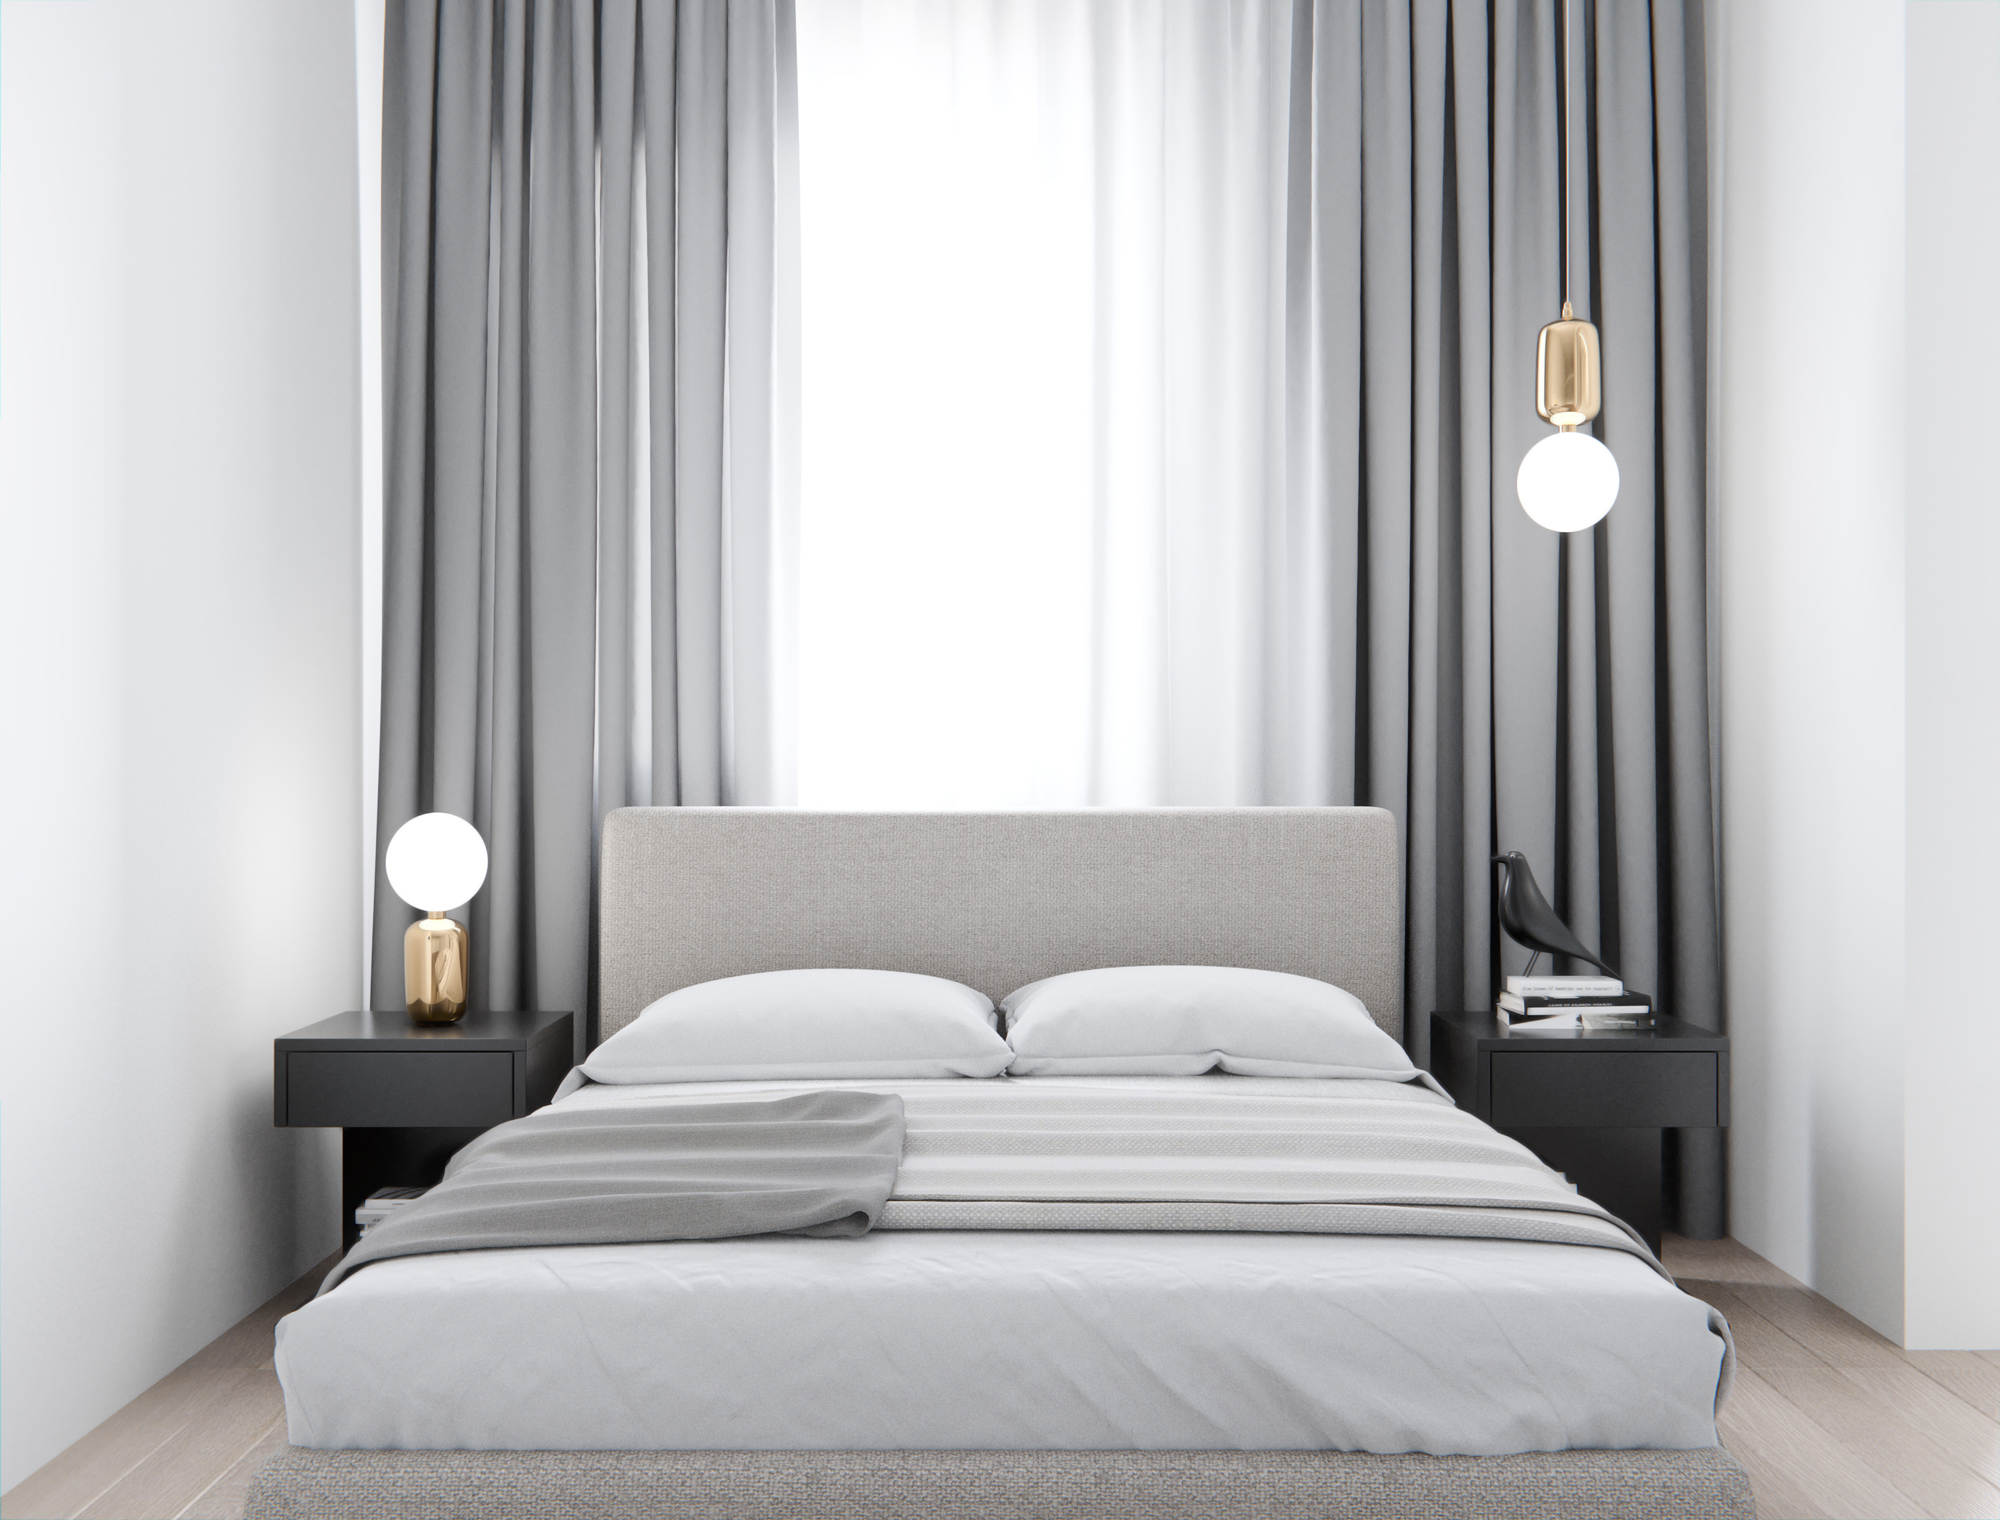 Modern Style Bedroom Ideas Bedroom Ideas 52 Modern Design Ideas For Your Bedroom The Luxpad